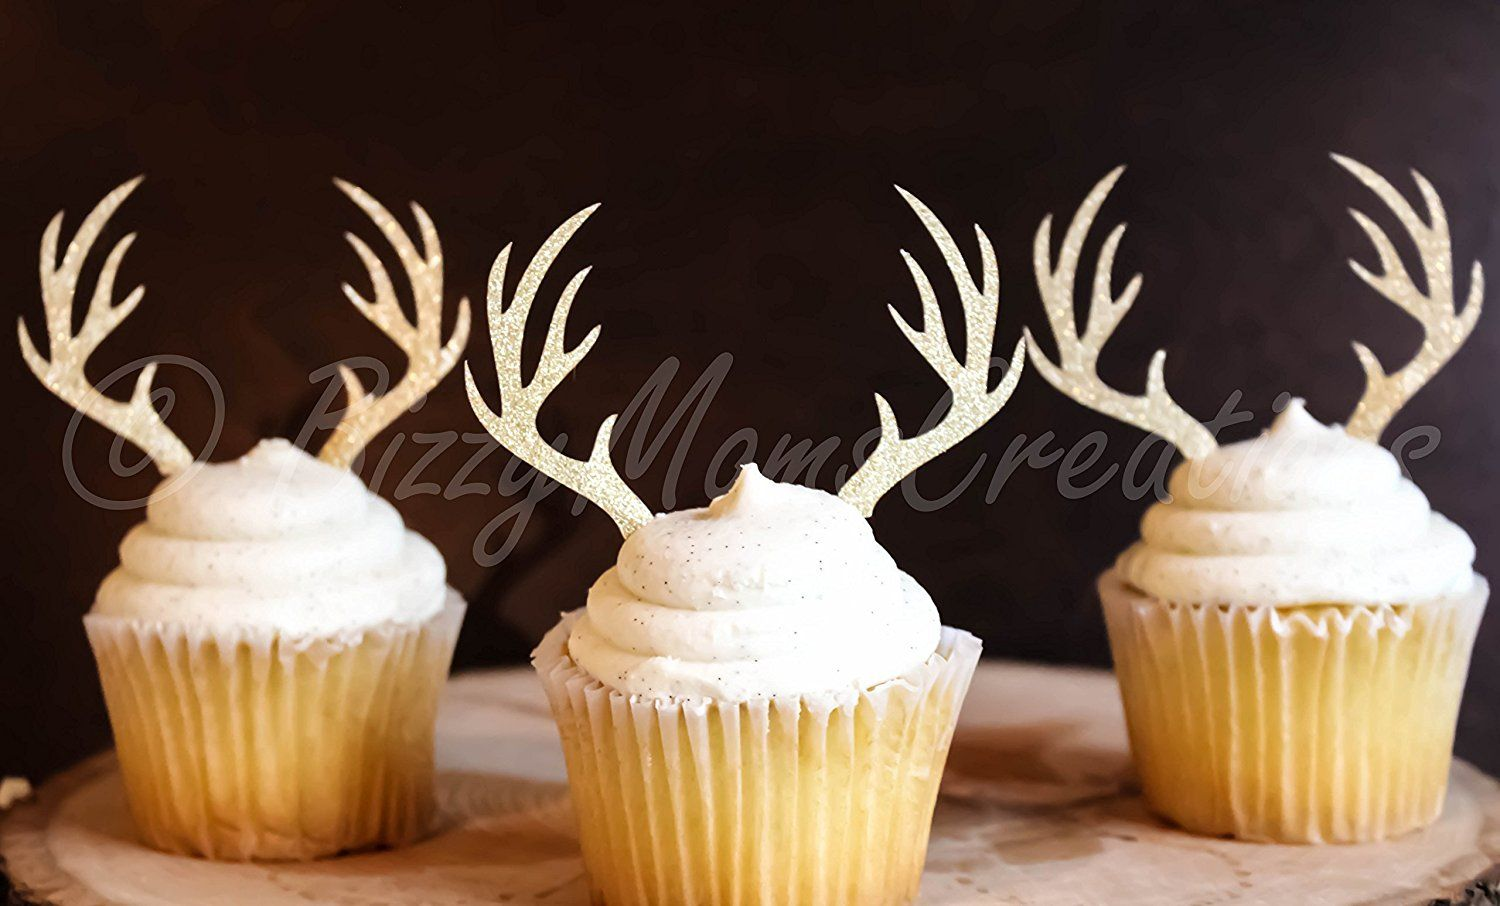 Rustic Party Decorations Deer Cupcake Toppers Cupcake Toppers Antler Cupcake Toppers Gold Party Decor Qty 12